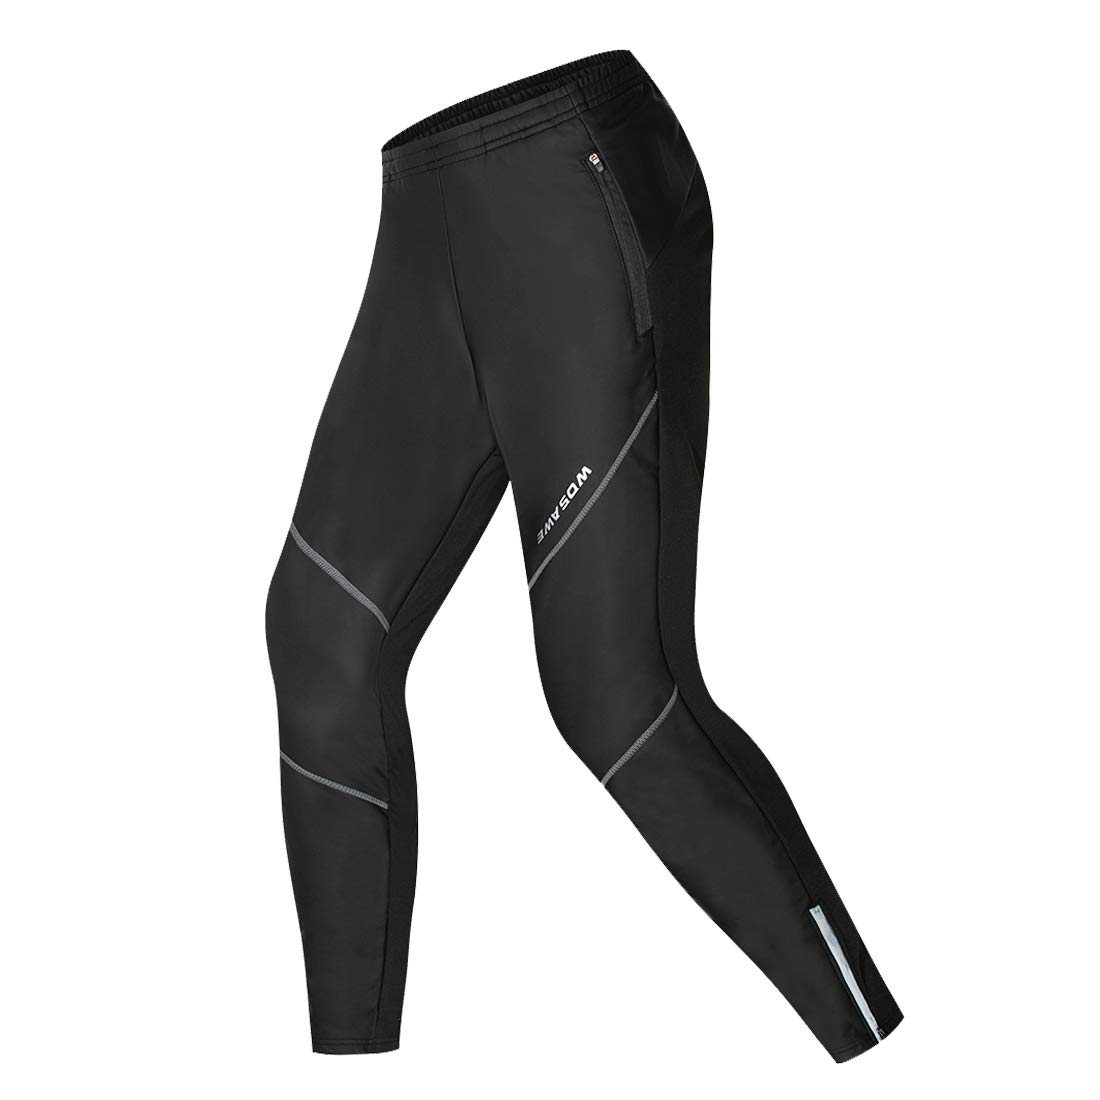 WOLFBIKEメンズThermal Cycling Jersey MTBバイクジャケットパンツ防風 B01N97BL8N Small|PU Leather Pants-Black PU Leather Pants-Black Small